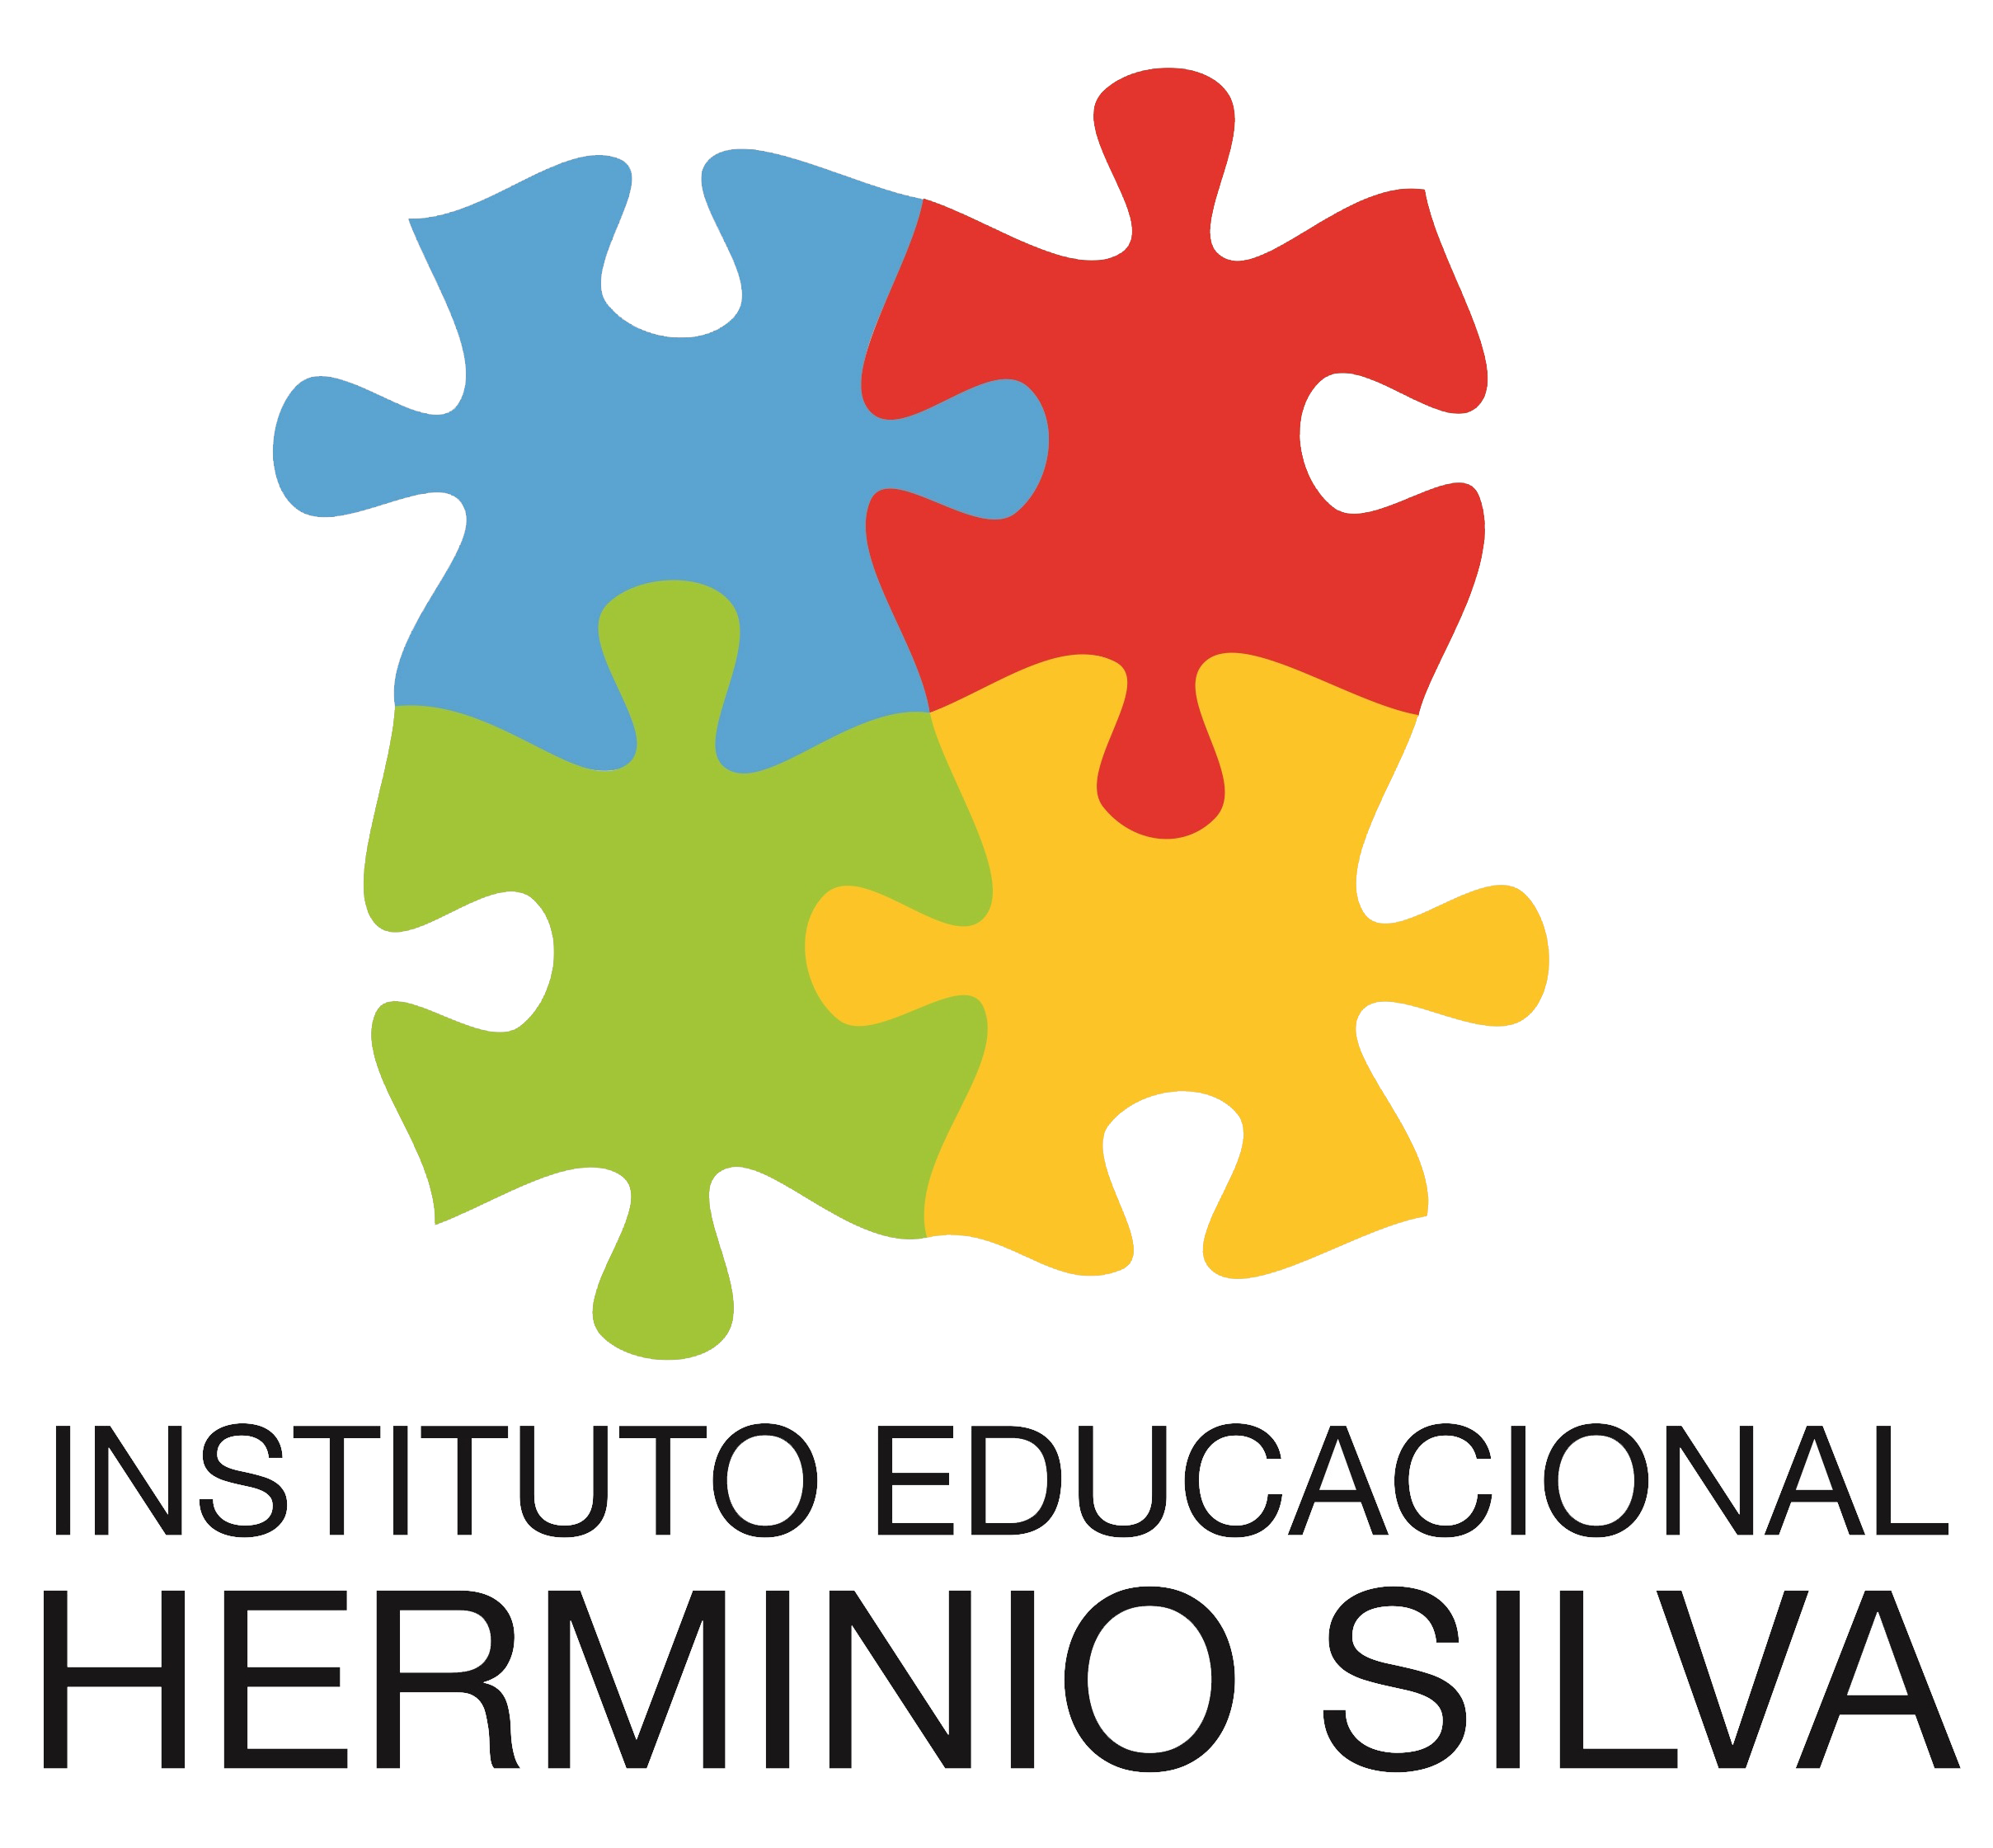 Instituto Educacional Hermínio Silva